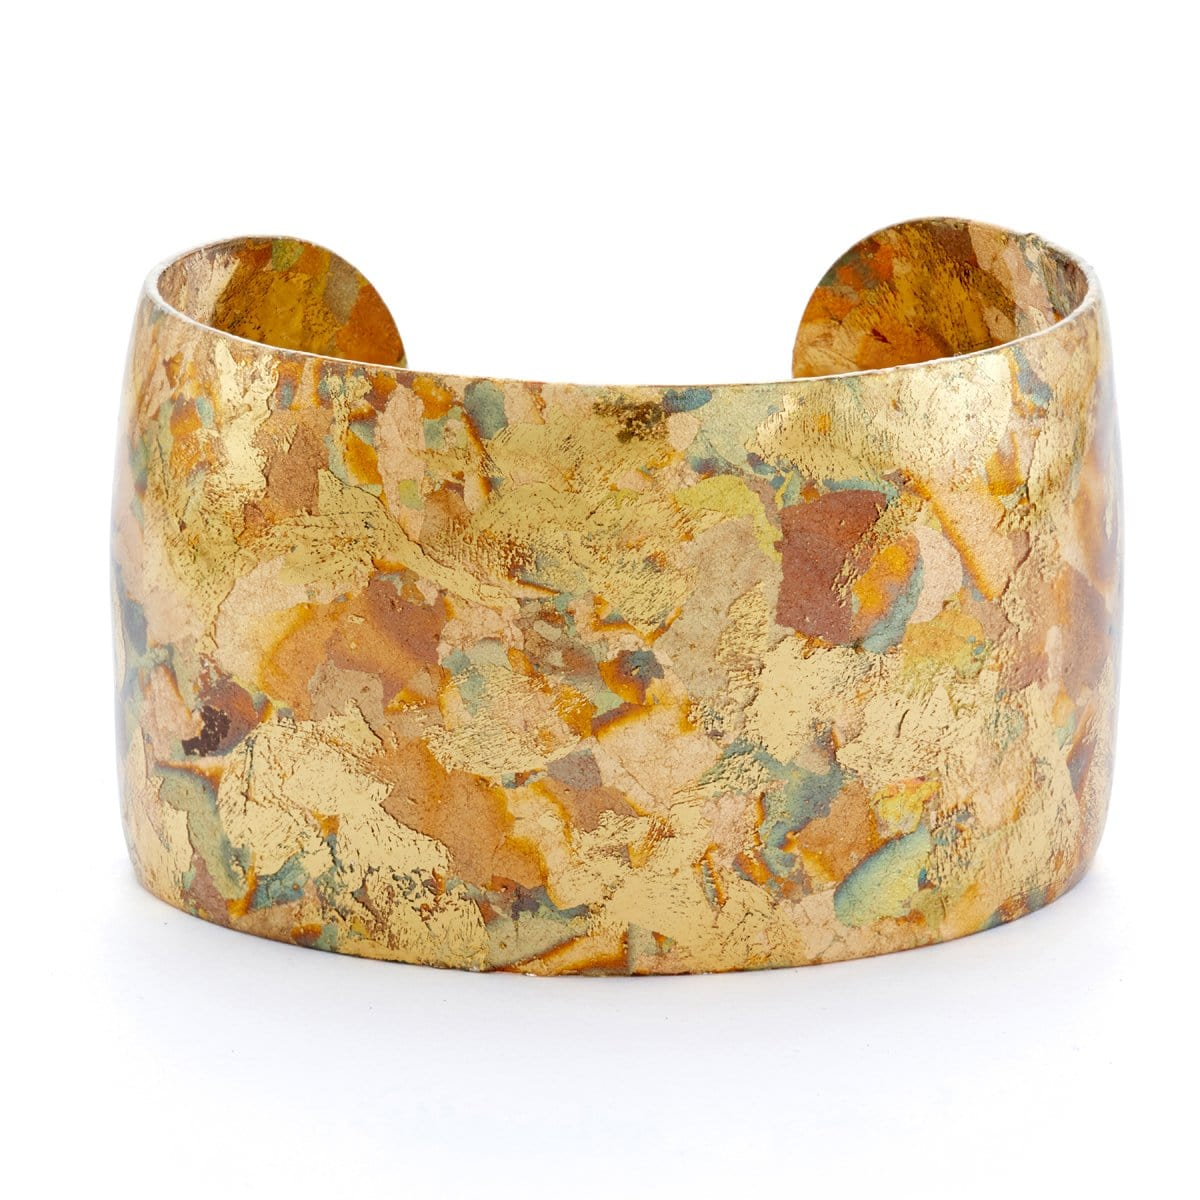 "Confetti 1.5"" Gold Cuff - AC129-Evocateur-Renee Taylor Gallery"